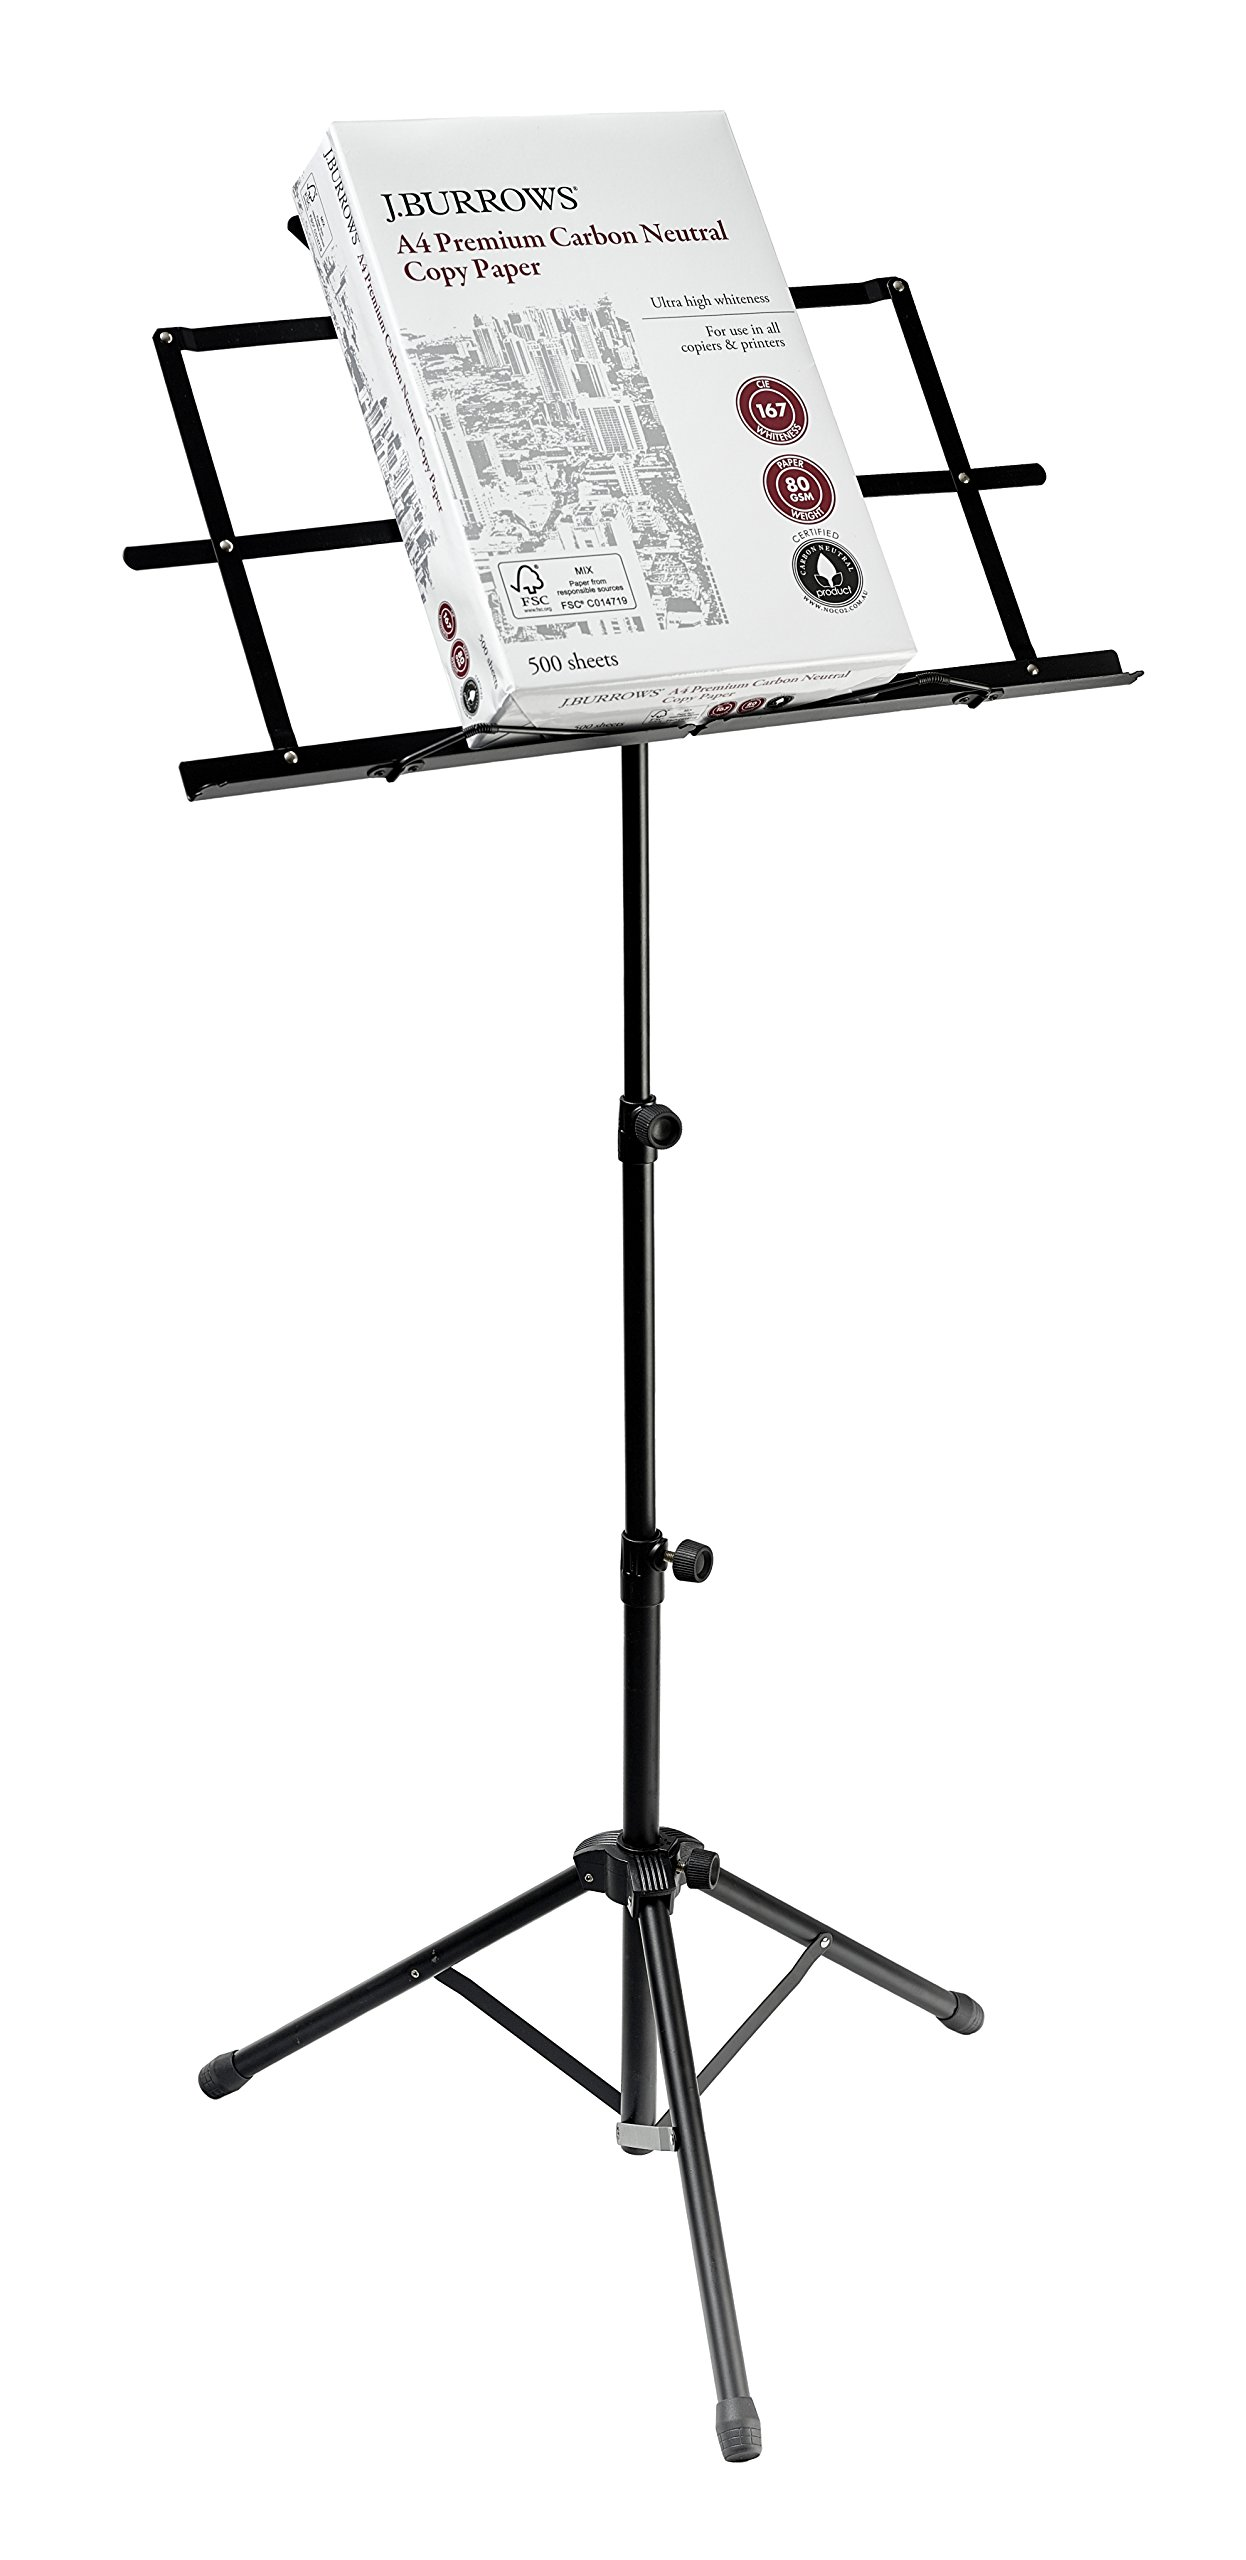 Be Sharpe Music Adjustable Folding Music Stand with a Carry Bag - Black